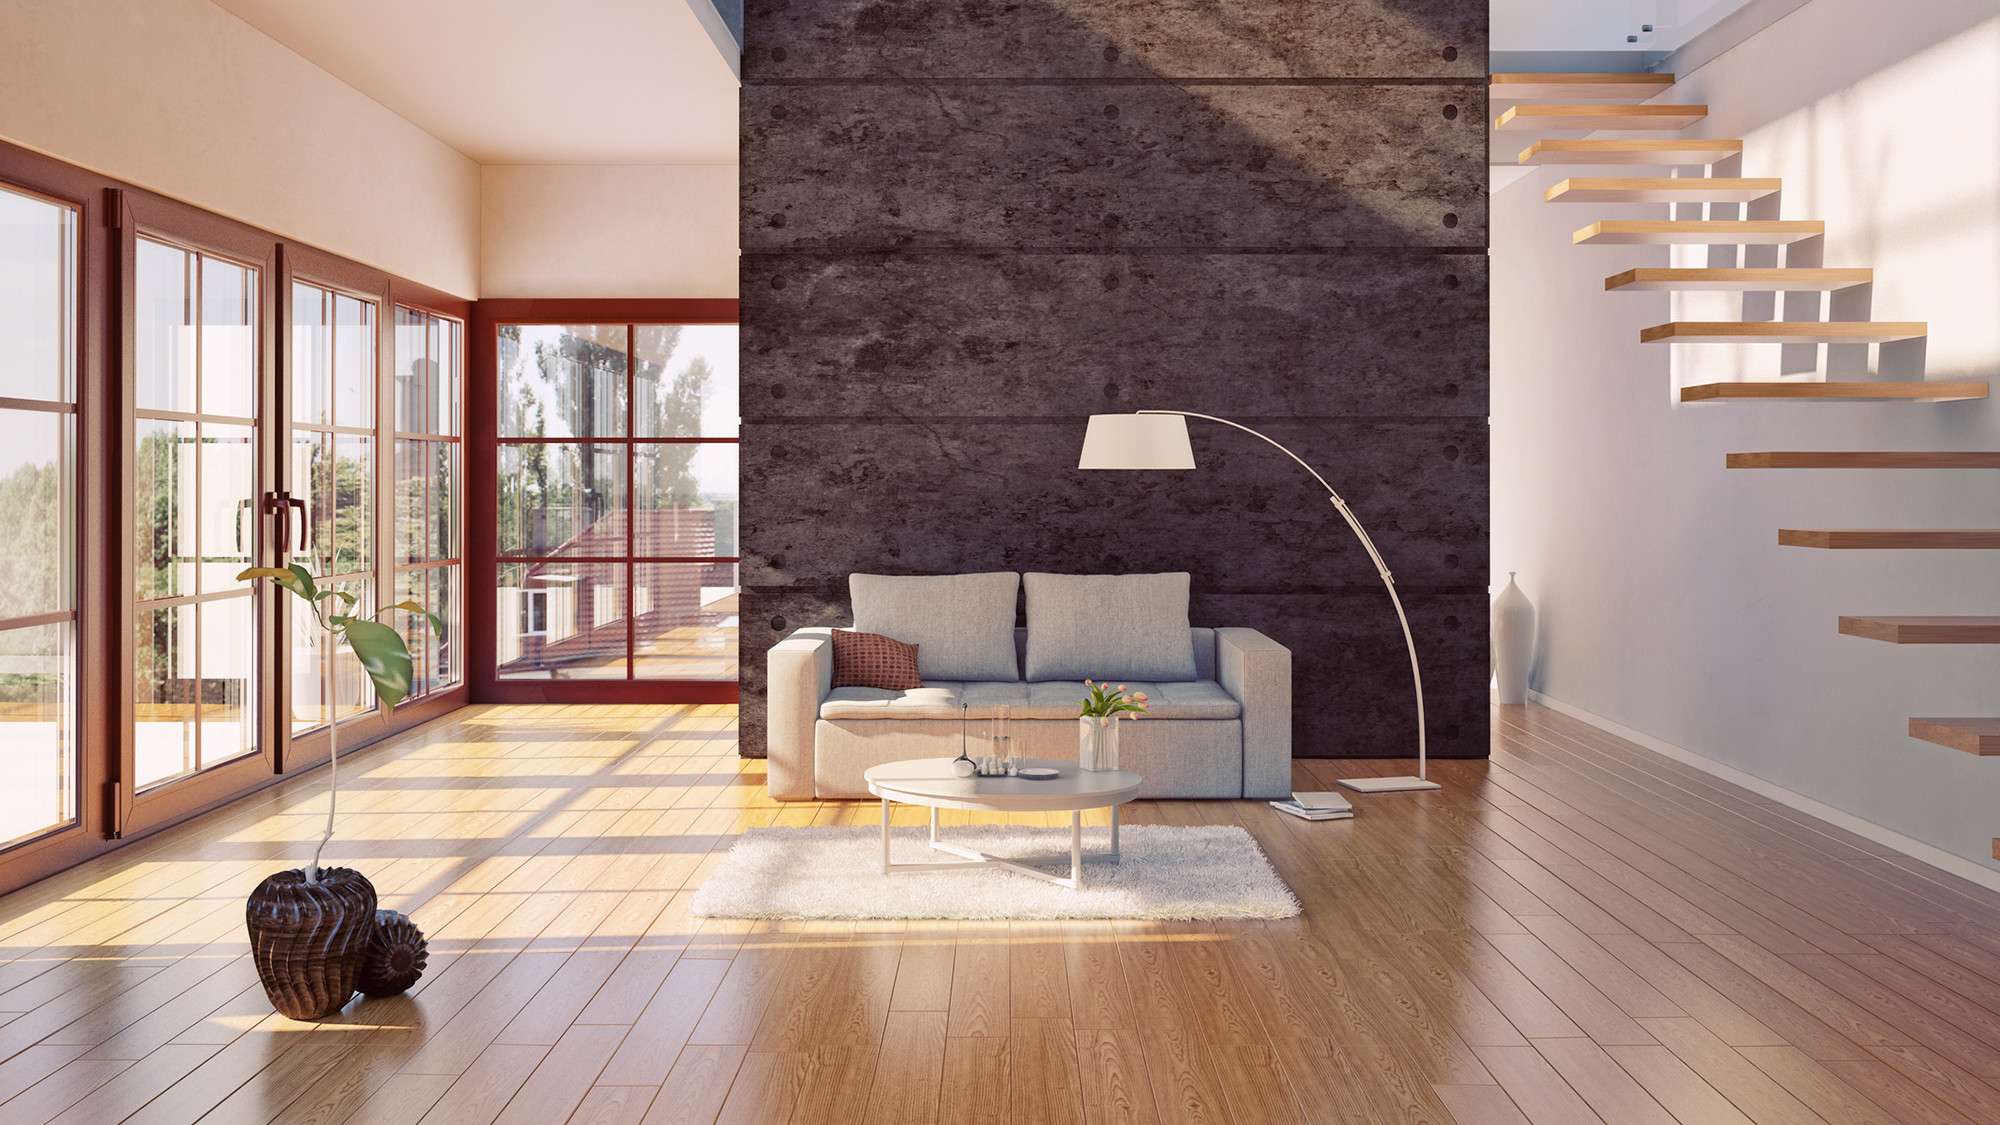 how to lay engineered hardwood flooring on concrete of do hardwood floors provide the best return on investment realtor coma intended for hardwood floors investment